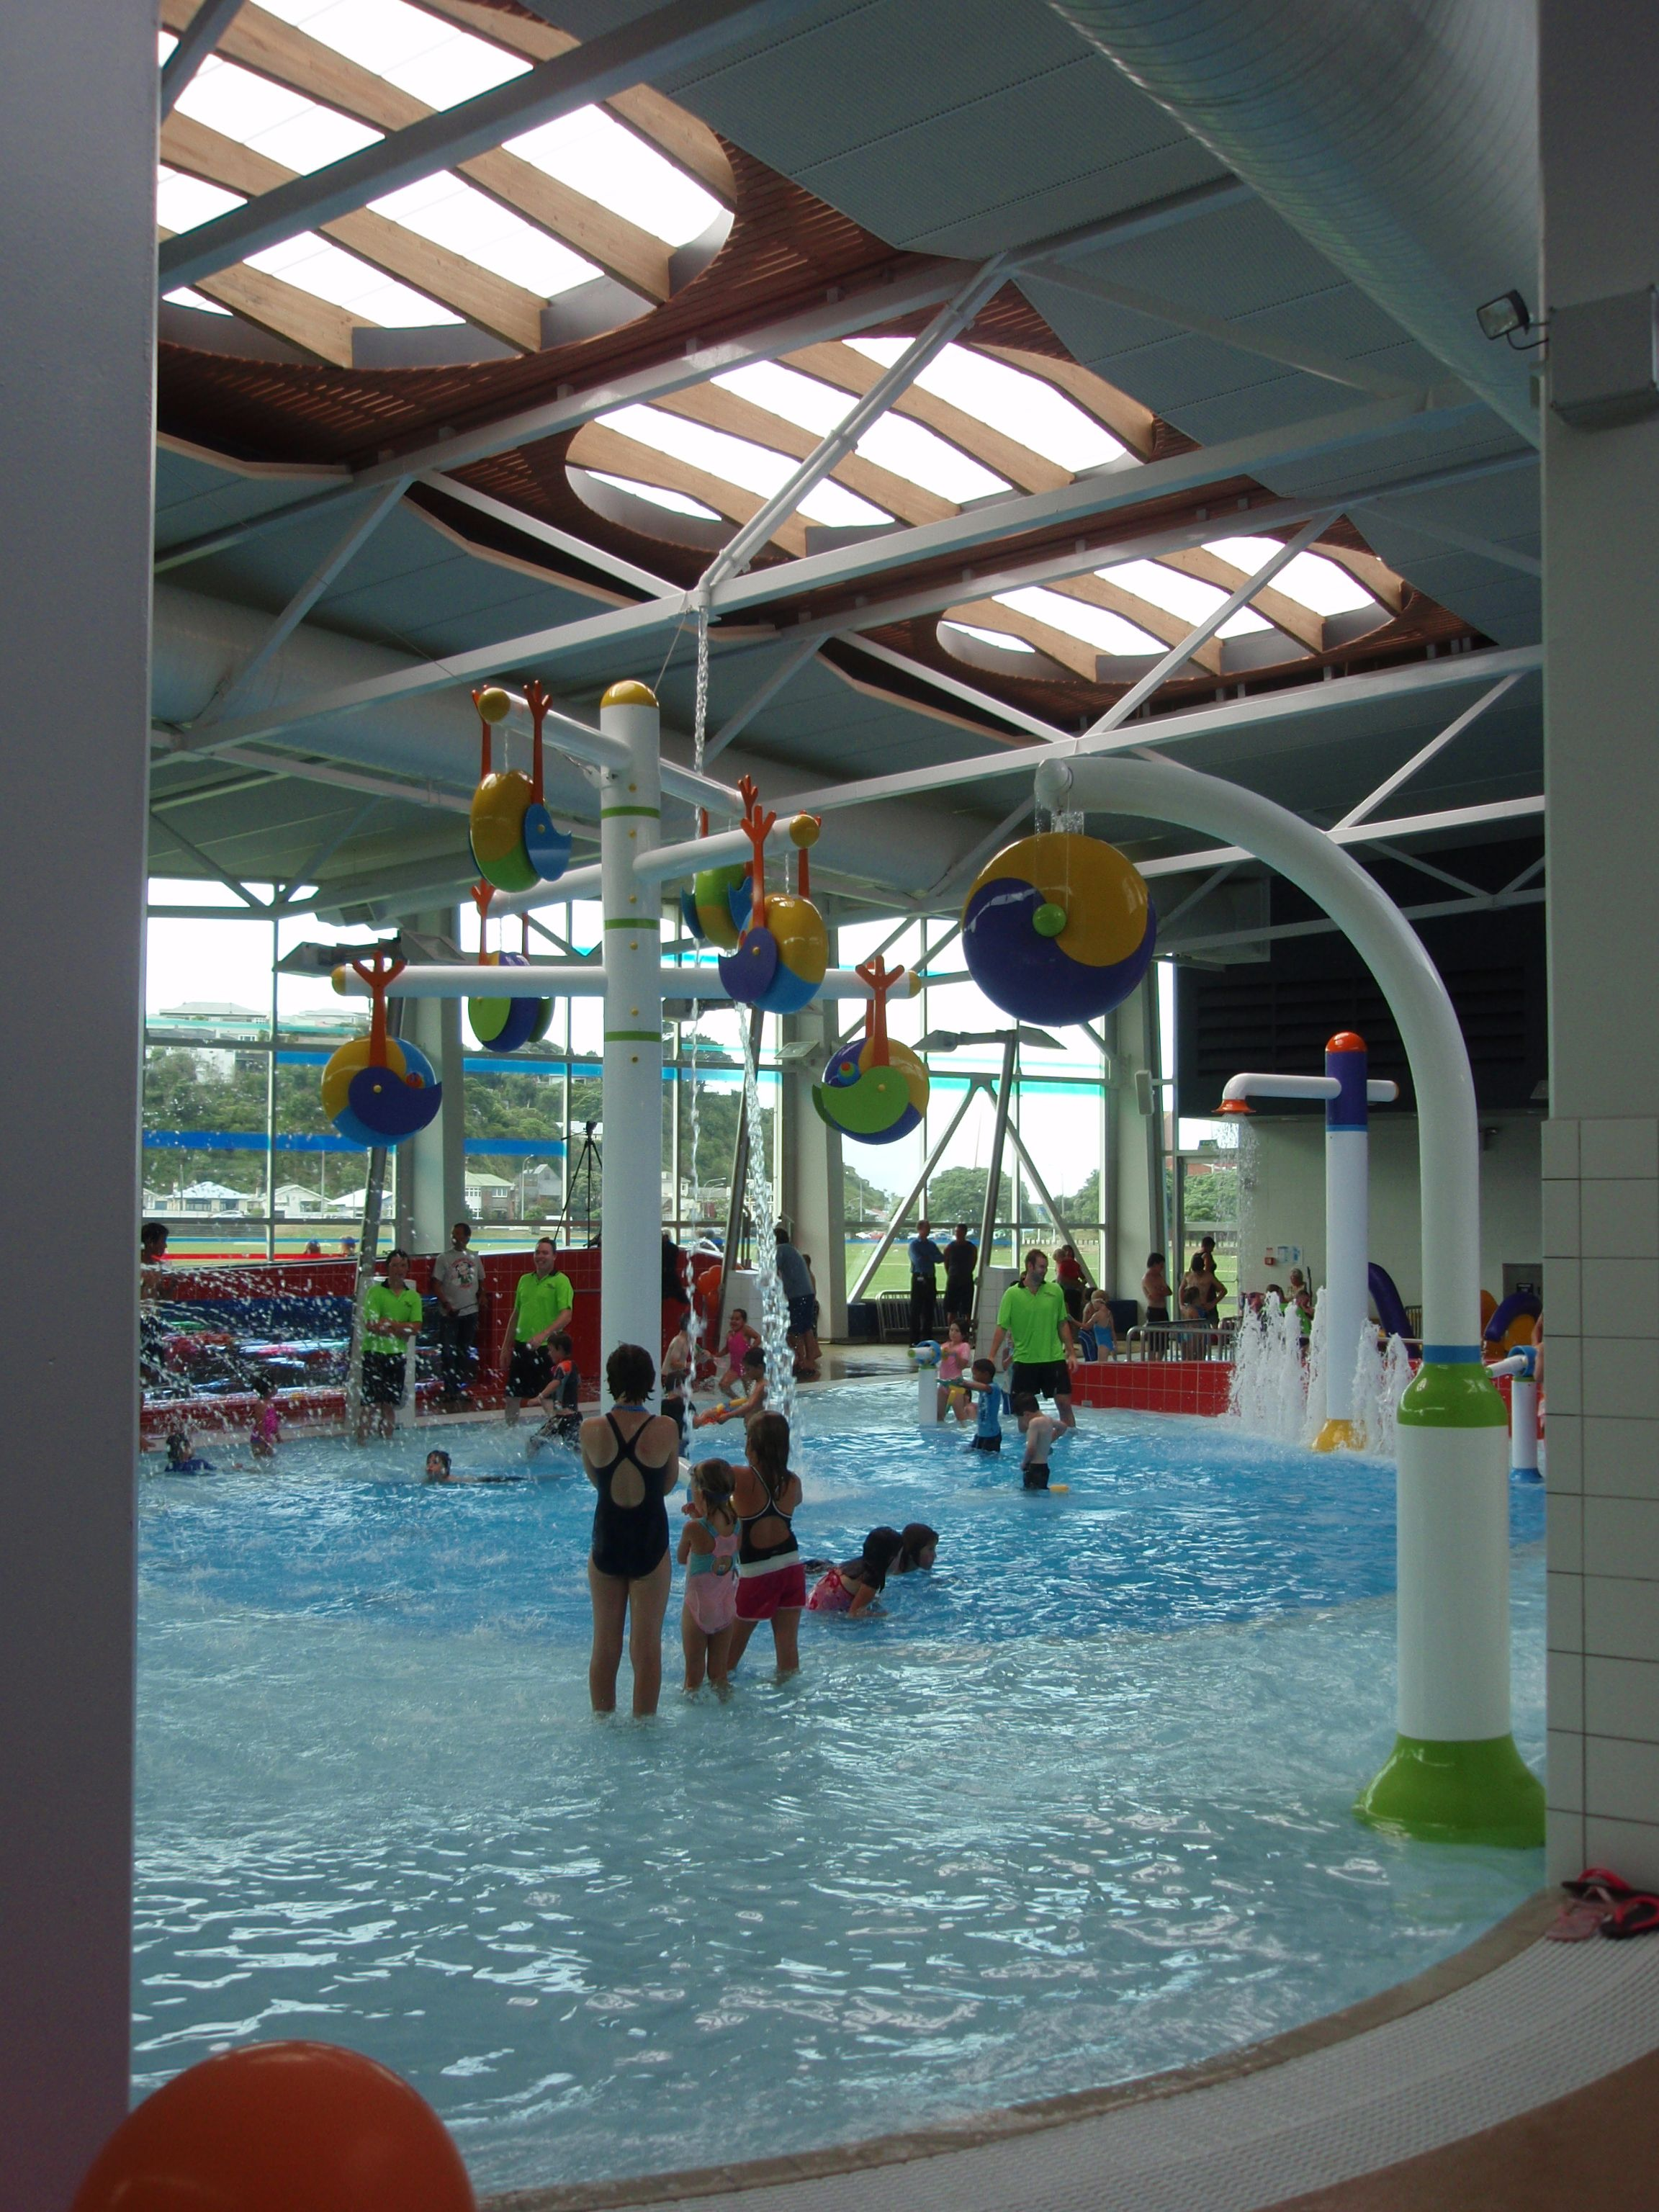 Kids Indoor Play Pool Area Pool Nz Architects Http Architecturehdt Co Nz Pools Splash Pool Kids Indoor Play Kid Pool